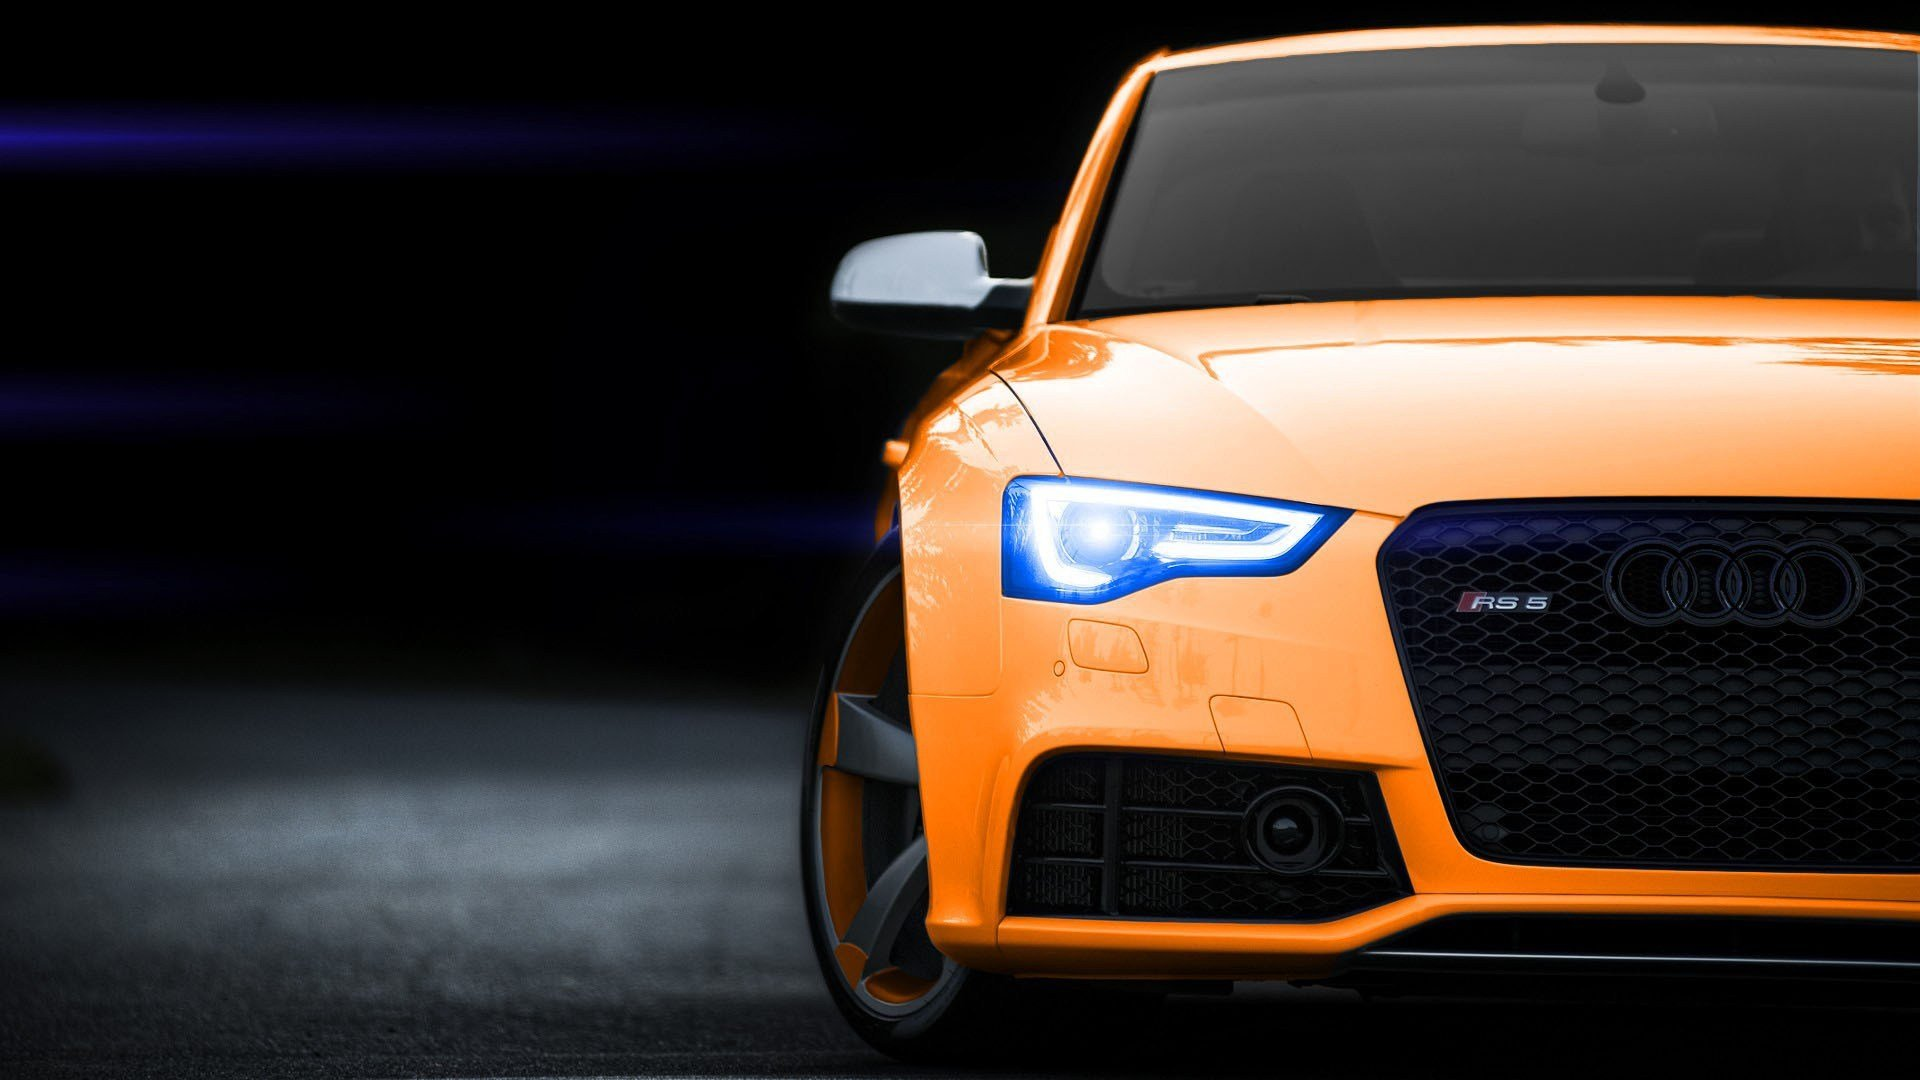 Latest Tag For Editing Hd Background Audi Car Dub Magazine Mc Free Download